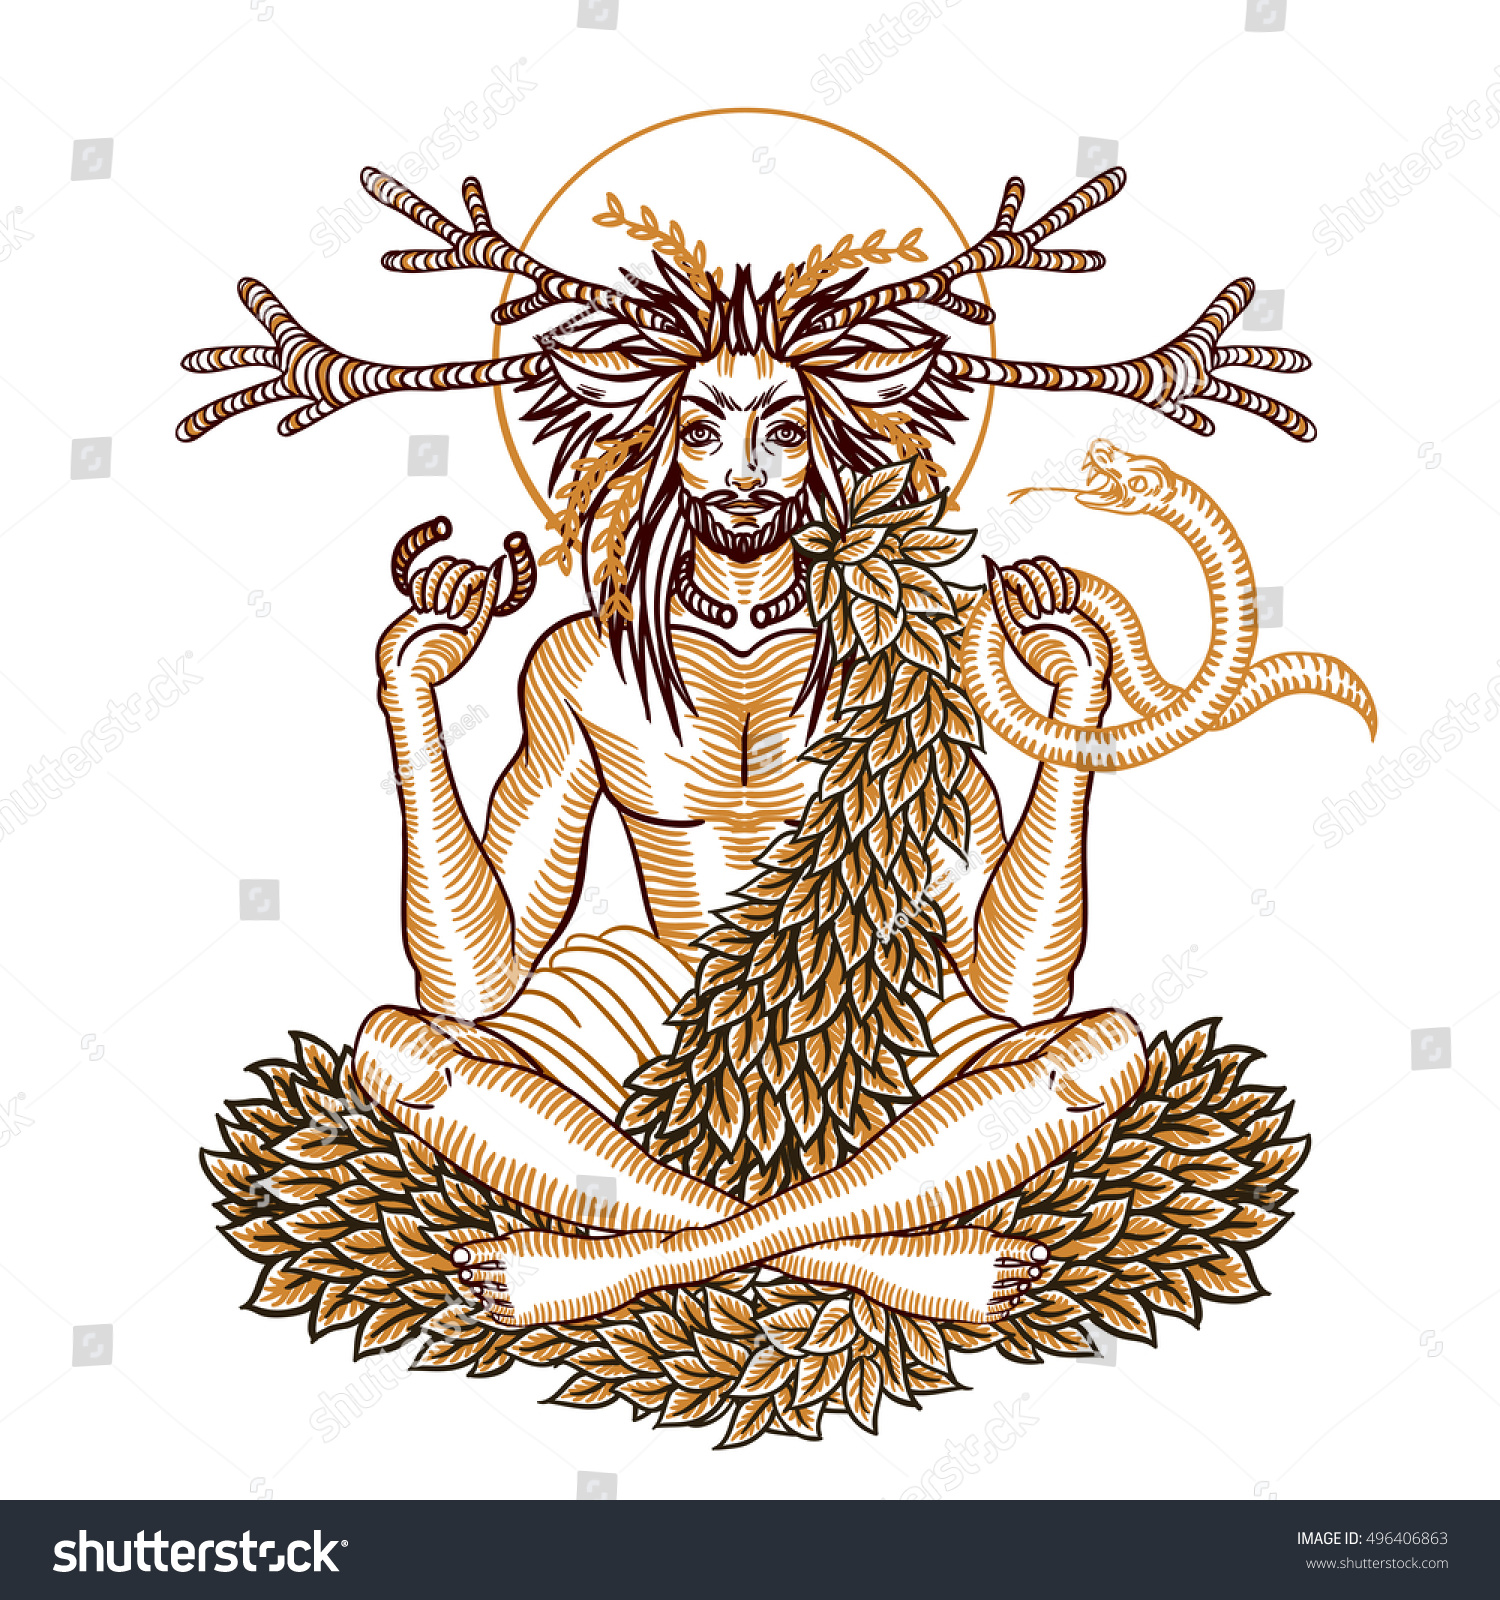 Engraving art wicca horned god cernunnos stock vector 496406863 engraving art of a wicca horned god cernunnos holding snake and wearing torc symbolic illustration biocorpaavc Choice Image